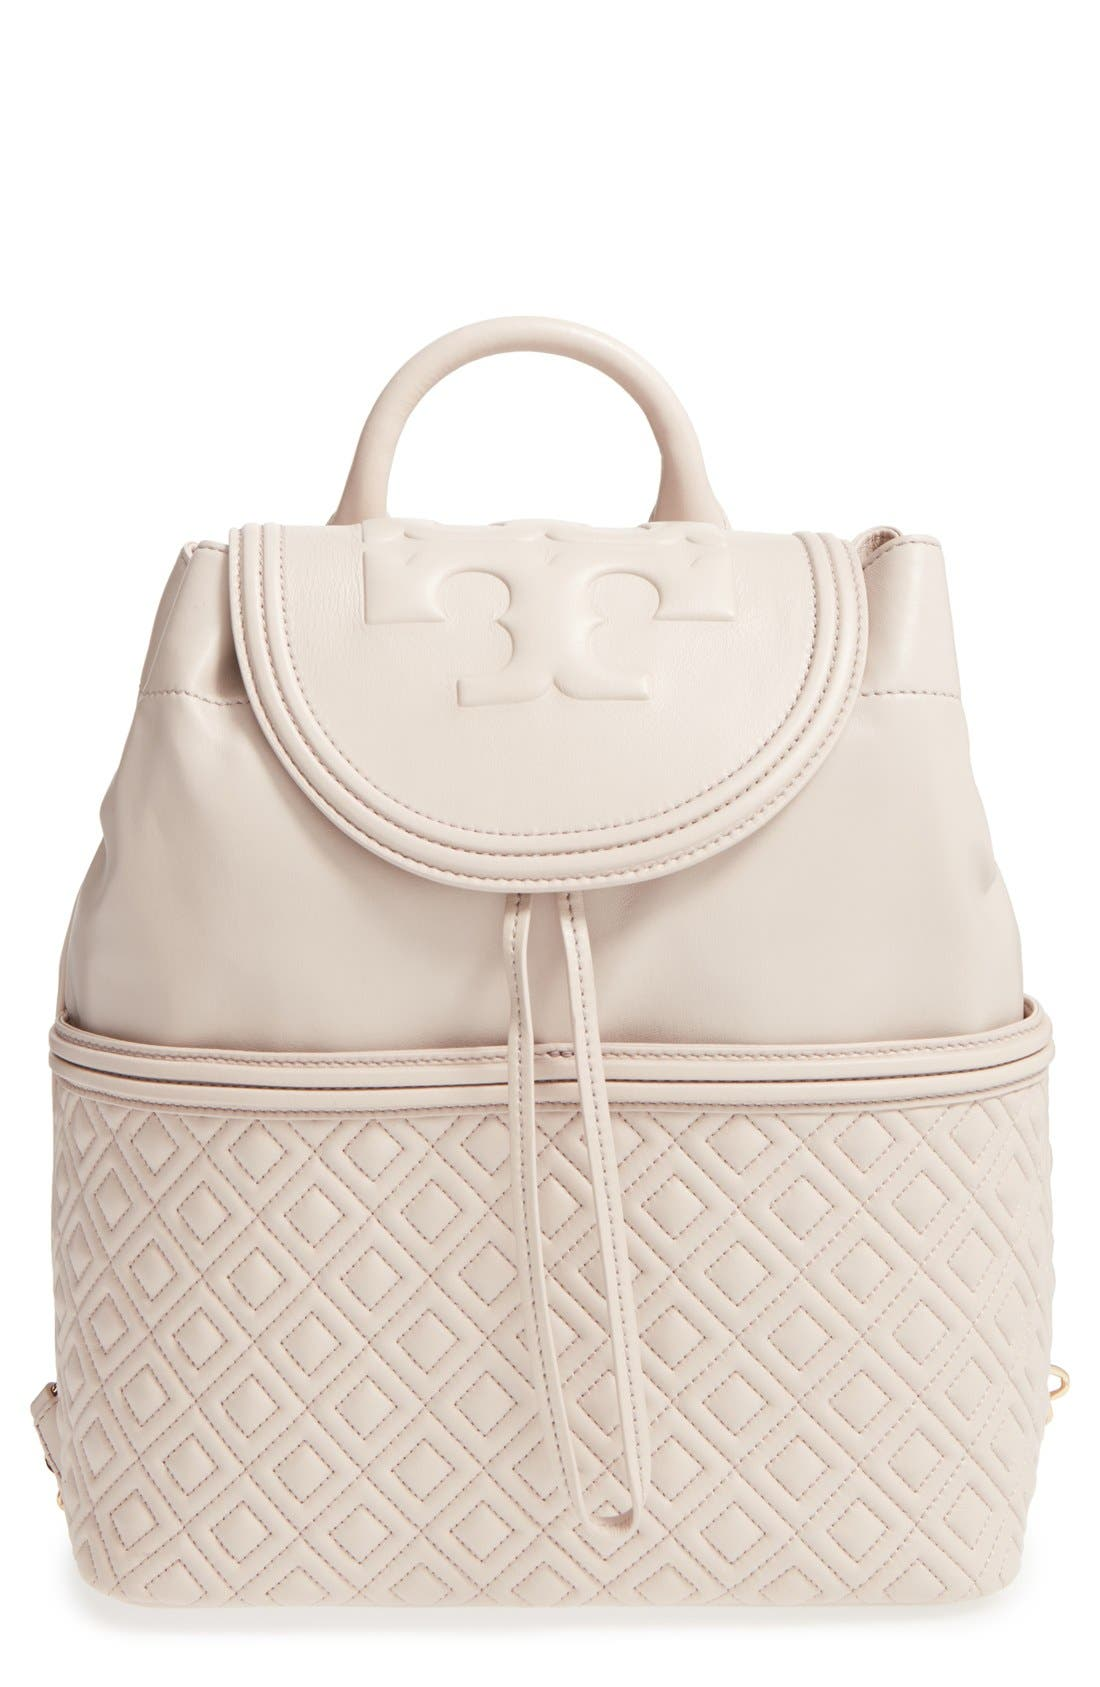 Alternate Image 1 Selected - Tory Burch 'Fleming' Quilted Lambskin Leather Backpack